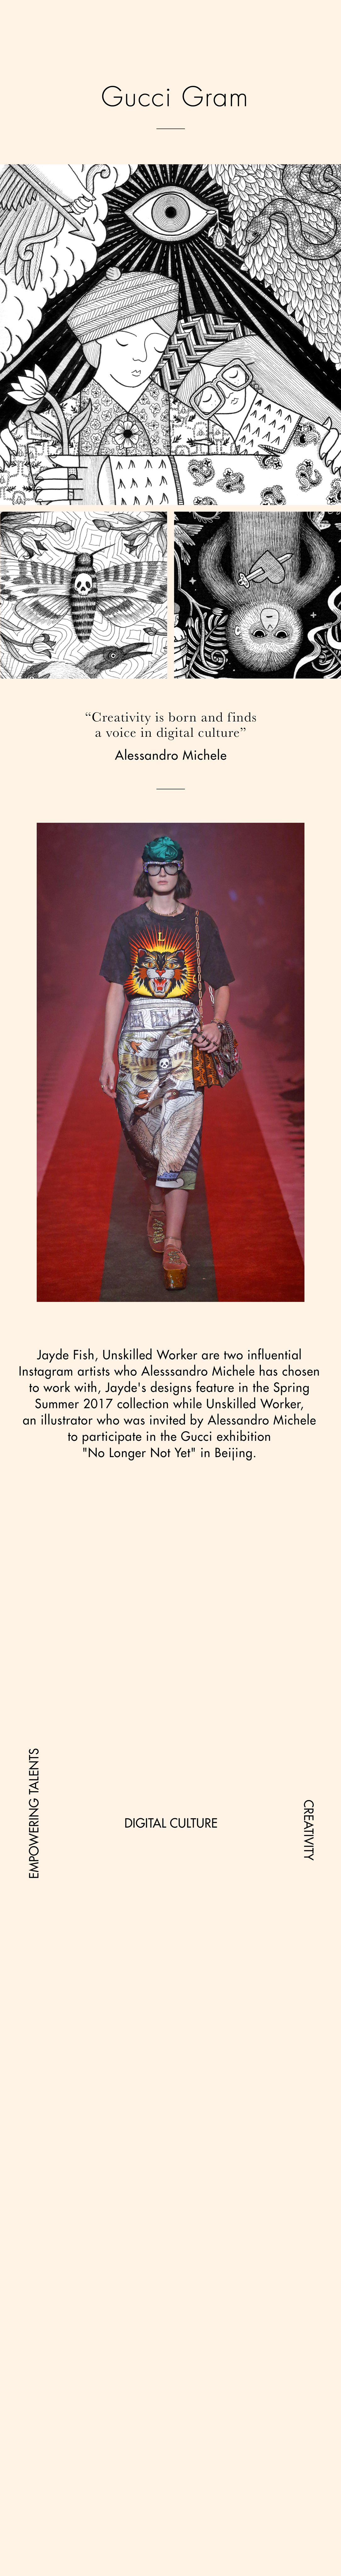 02ed94aabc9 Collaborations and unexpected sources of inspiration round out Alessandro  Michele s contemporary vision for Gucci. Working with artists he has found  on ...